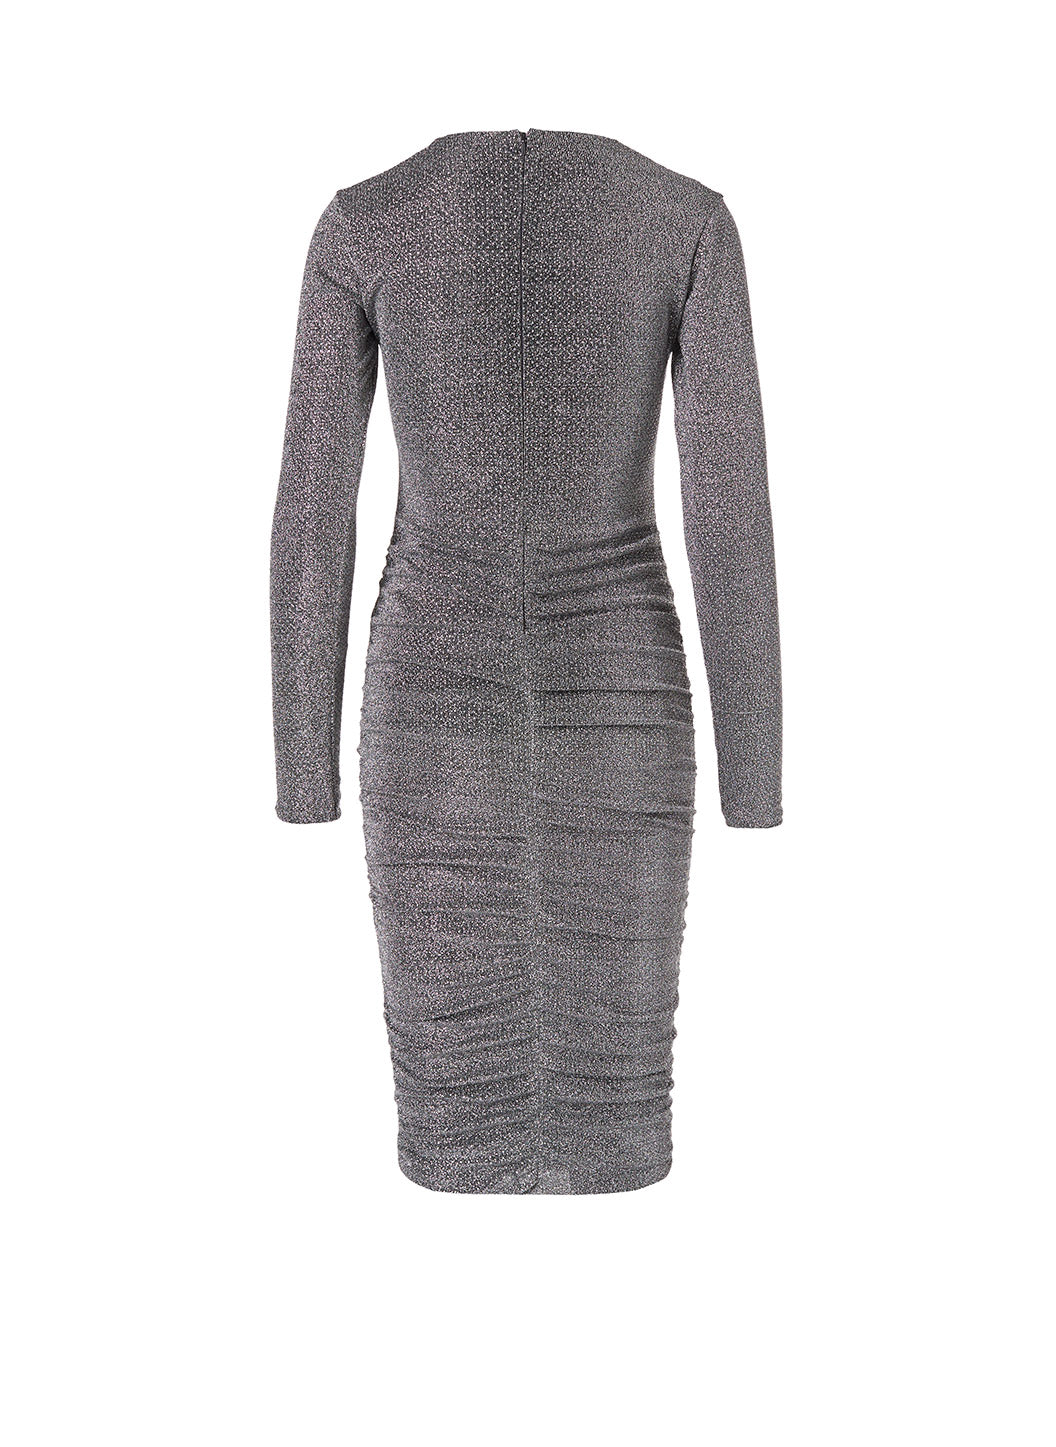 Look 18 Gathered Midi Dress Silver